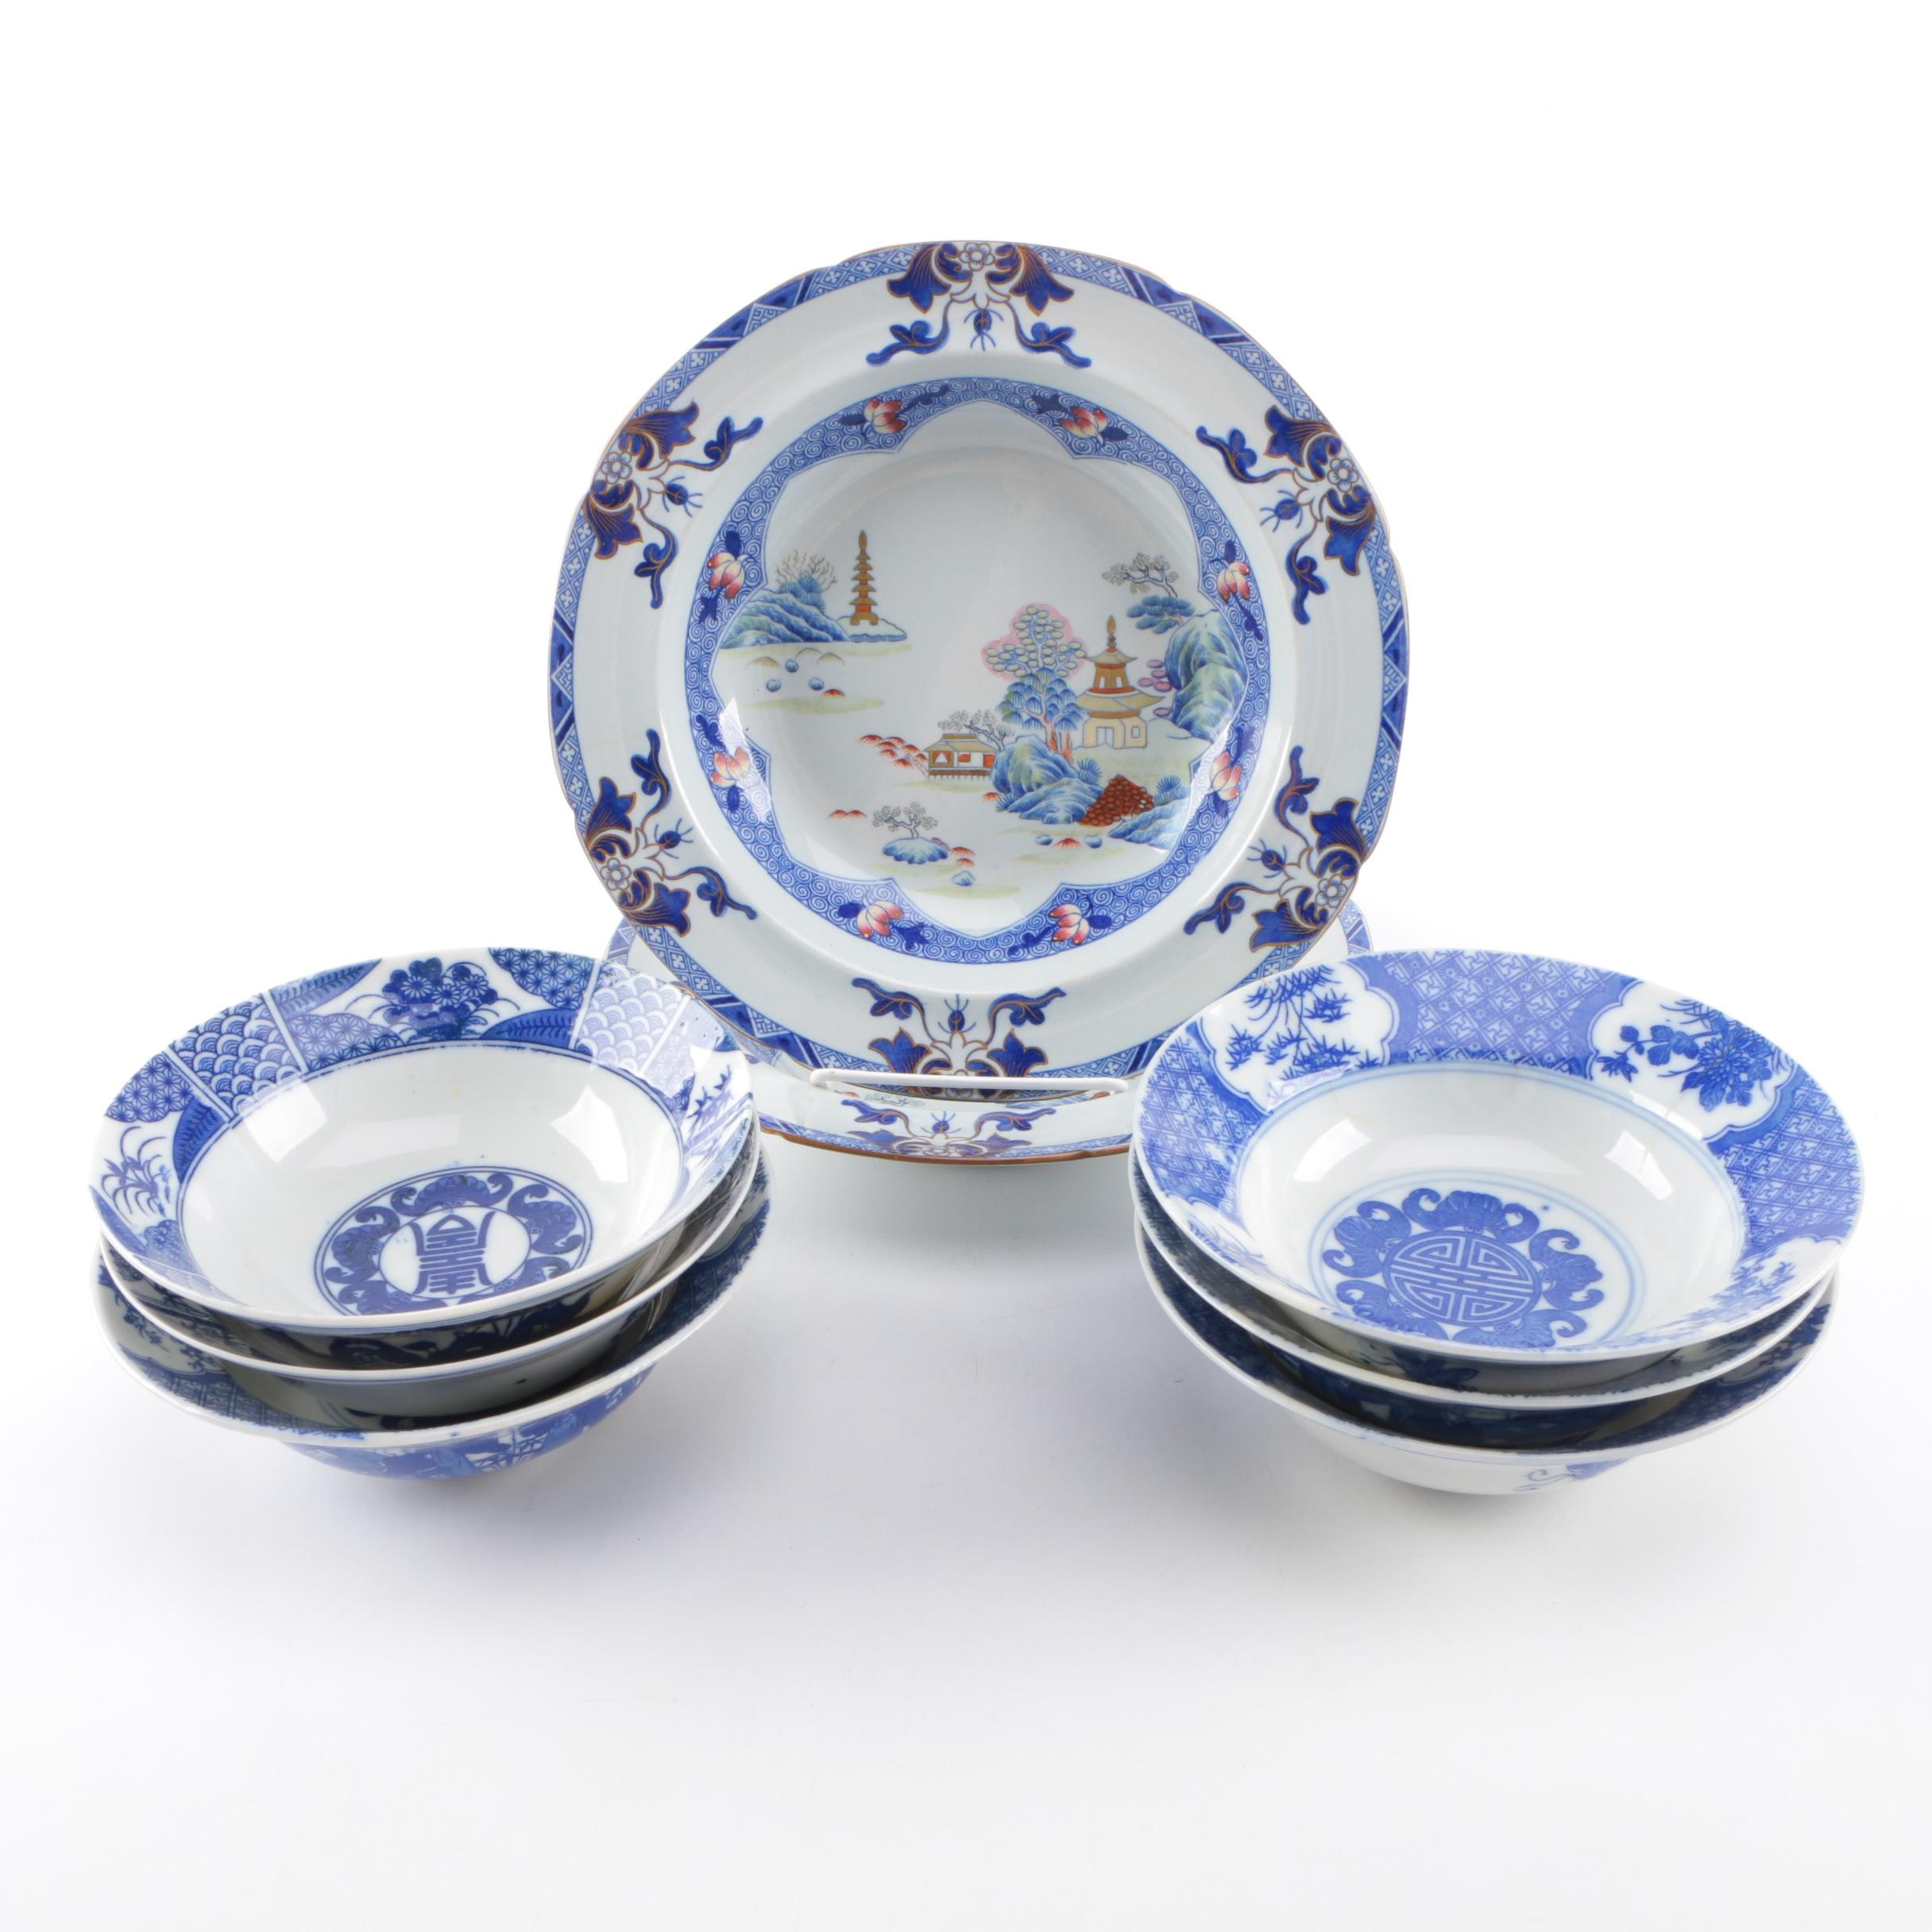 Eastern Asian Tableware and Spode English Pottery Dinnerware  sc 1 st  EBTH.com & Vintage Tableware Auction | Antique Tableware Auctions in Art ...